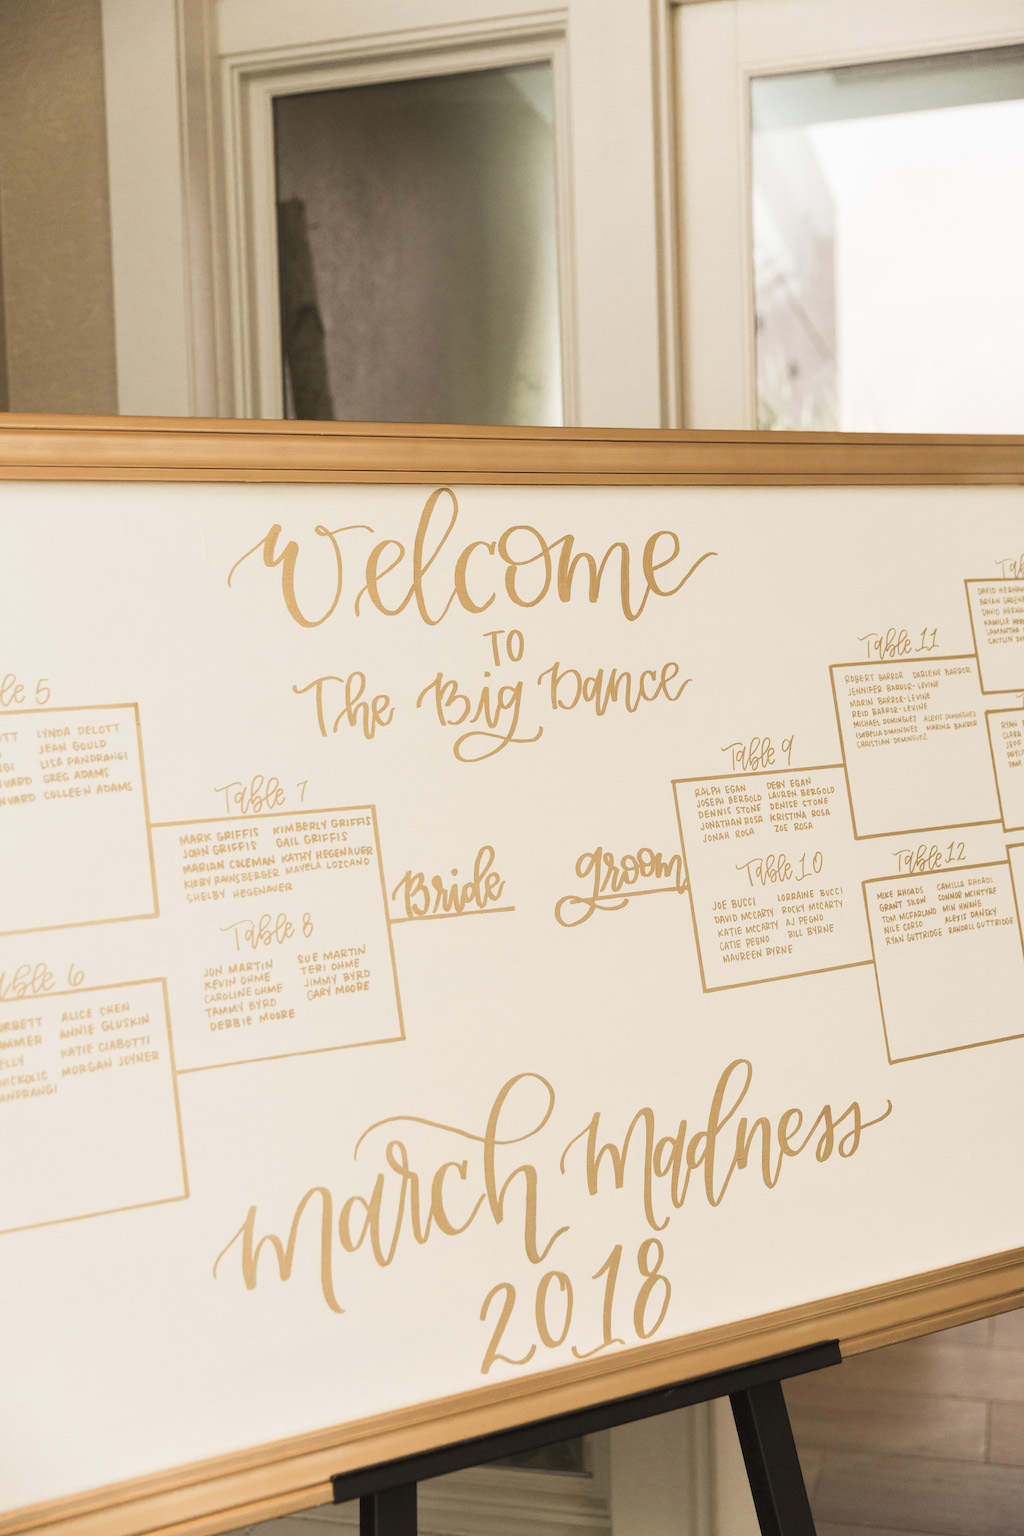 Gold and White Wedding Reception Seating Chart | Gold Wedding Sign | Basketball March Madness Seating Chart and Sign